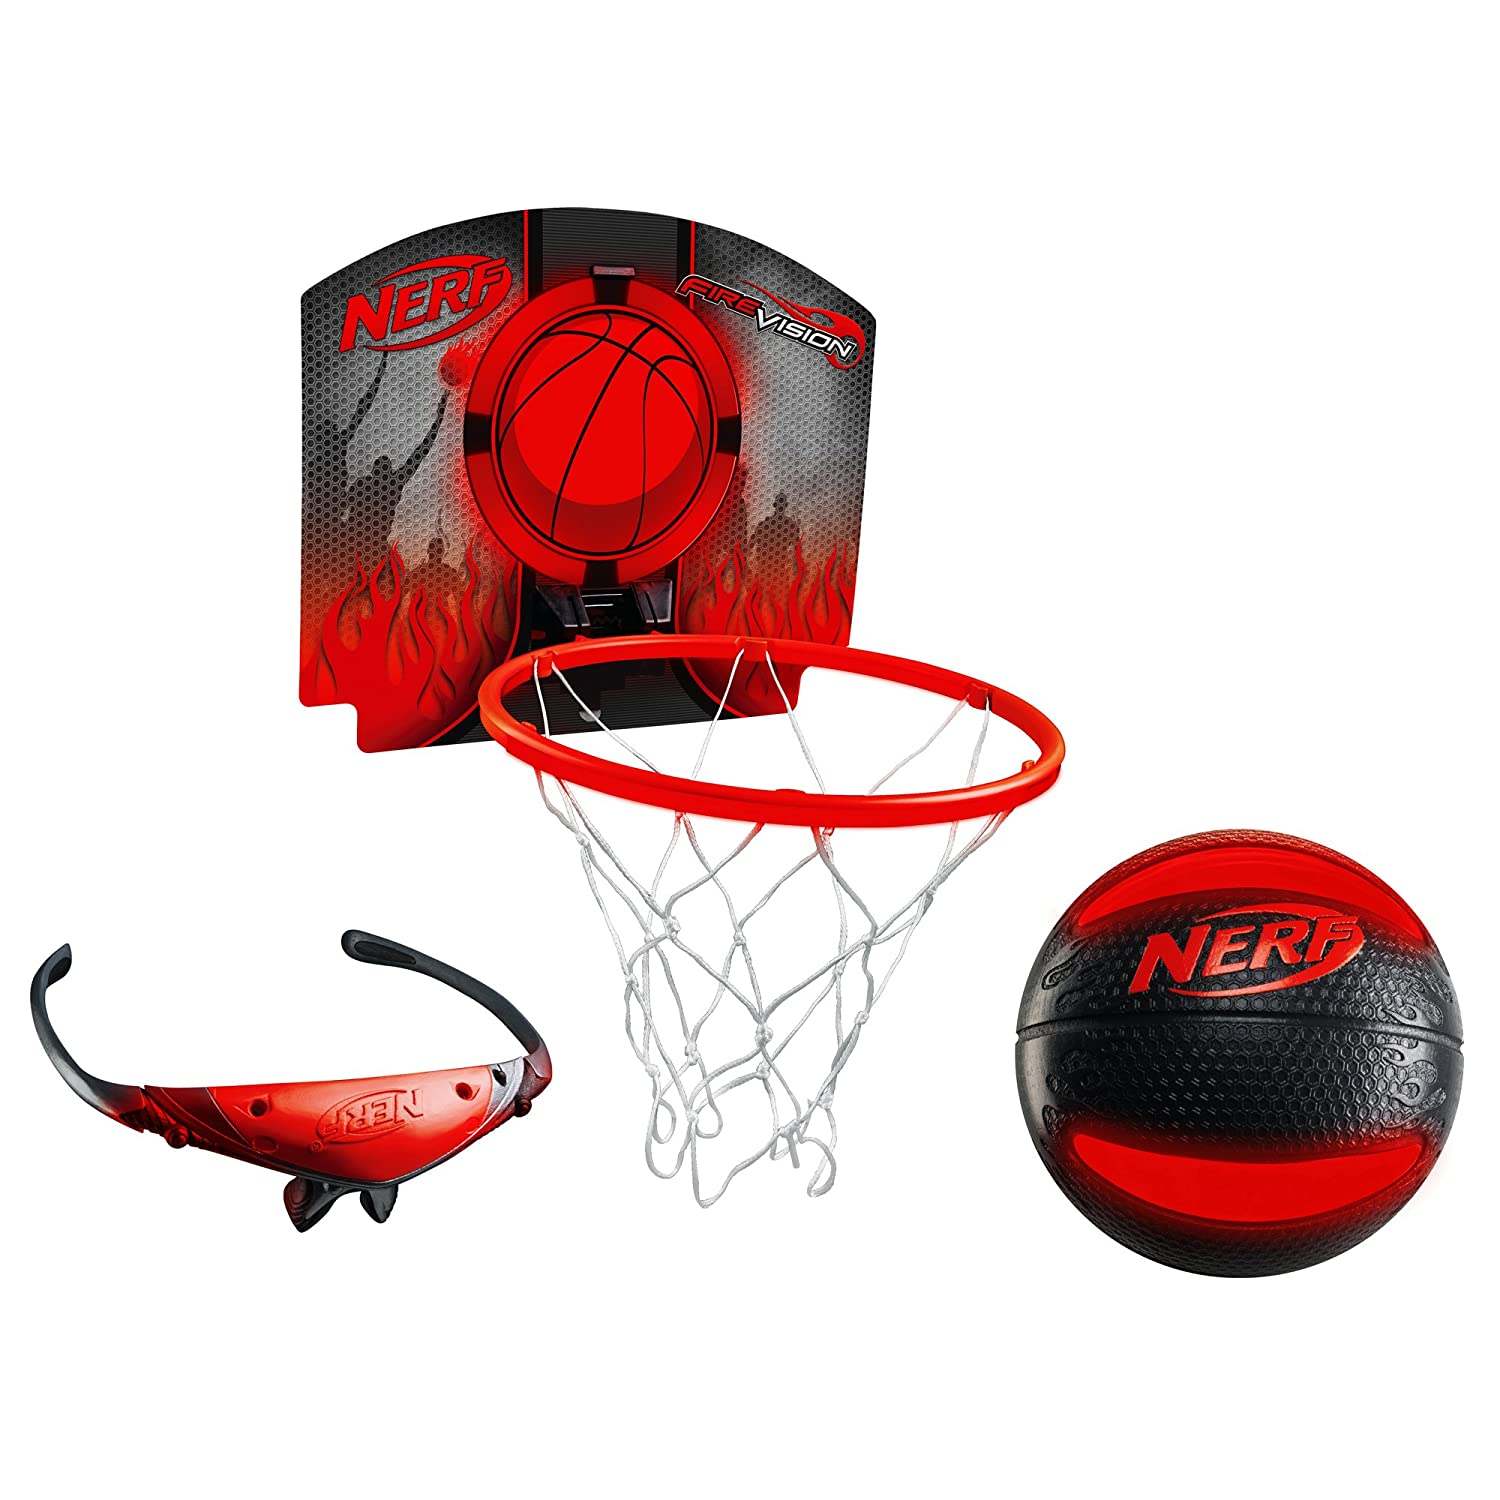 Firevision Sports Nerfoop Set